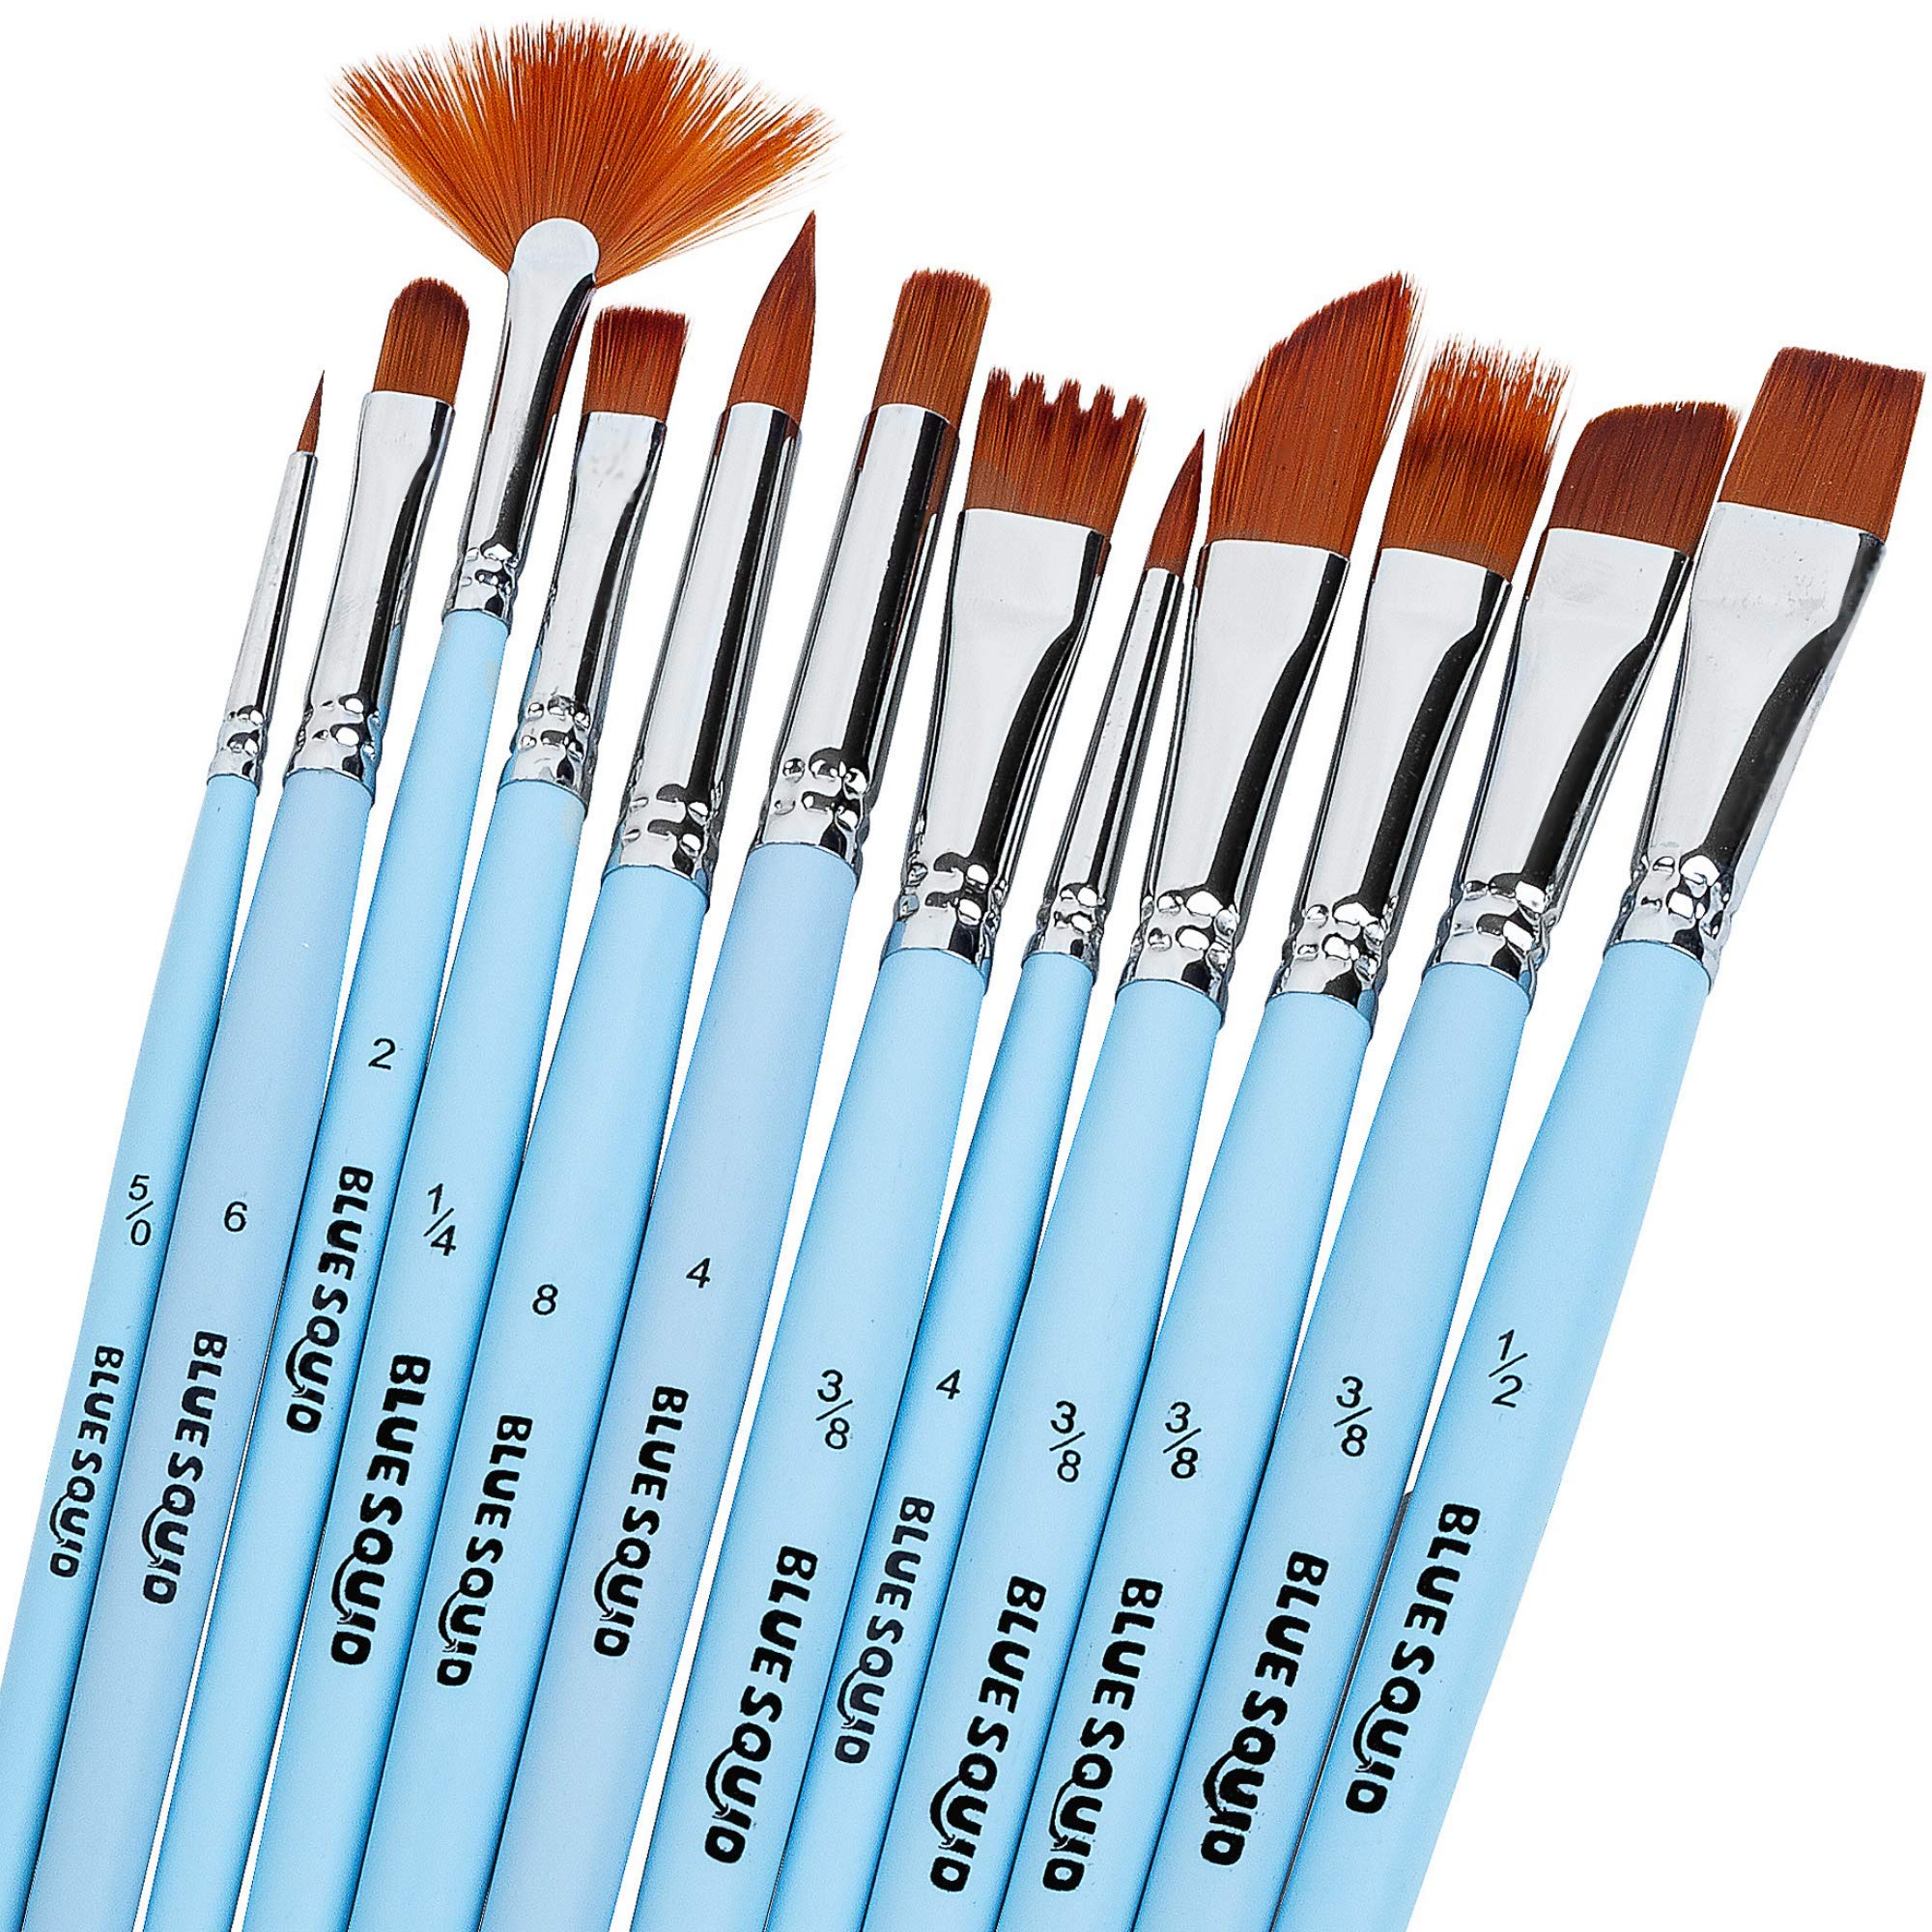 Watercolor Brushes Set 12 - by Blue Squid Perfect for Face Painting, Round Pointed Tip Nylon Hair Artist for Acrylic Watercolor Oil & Body Painting by Blue Squid